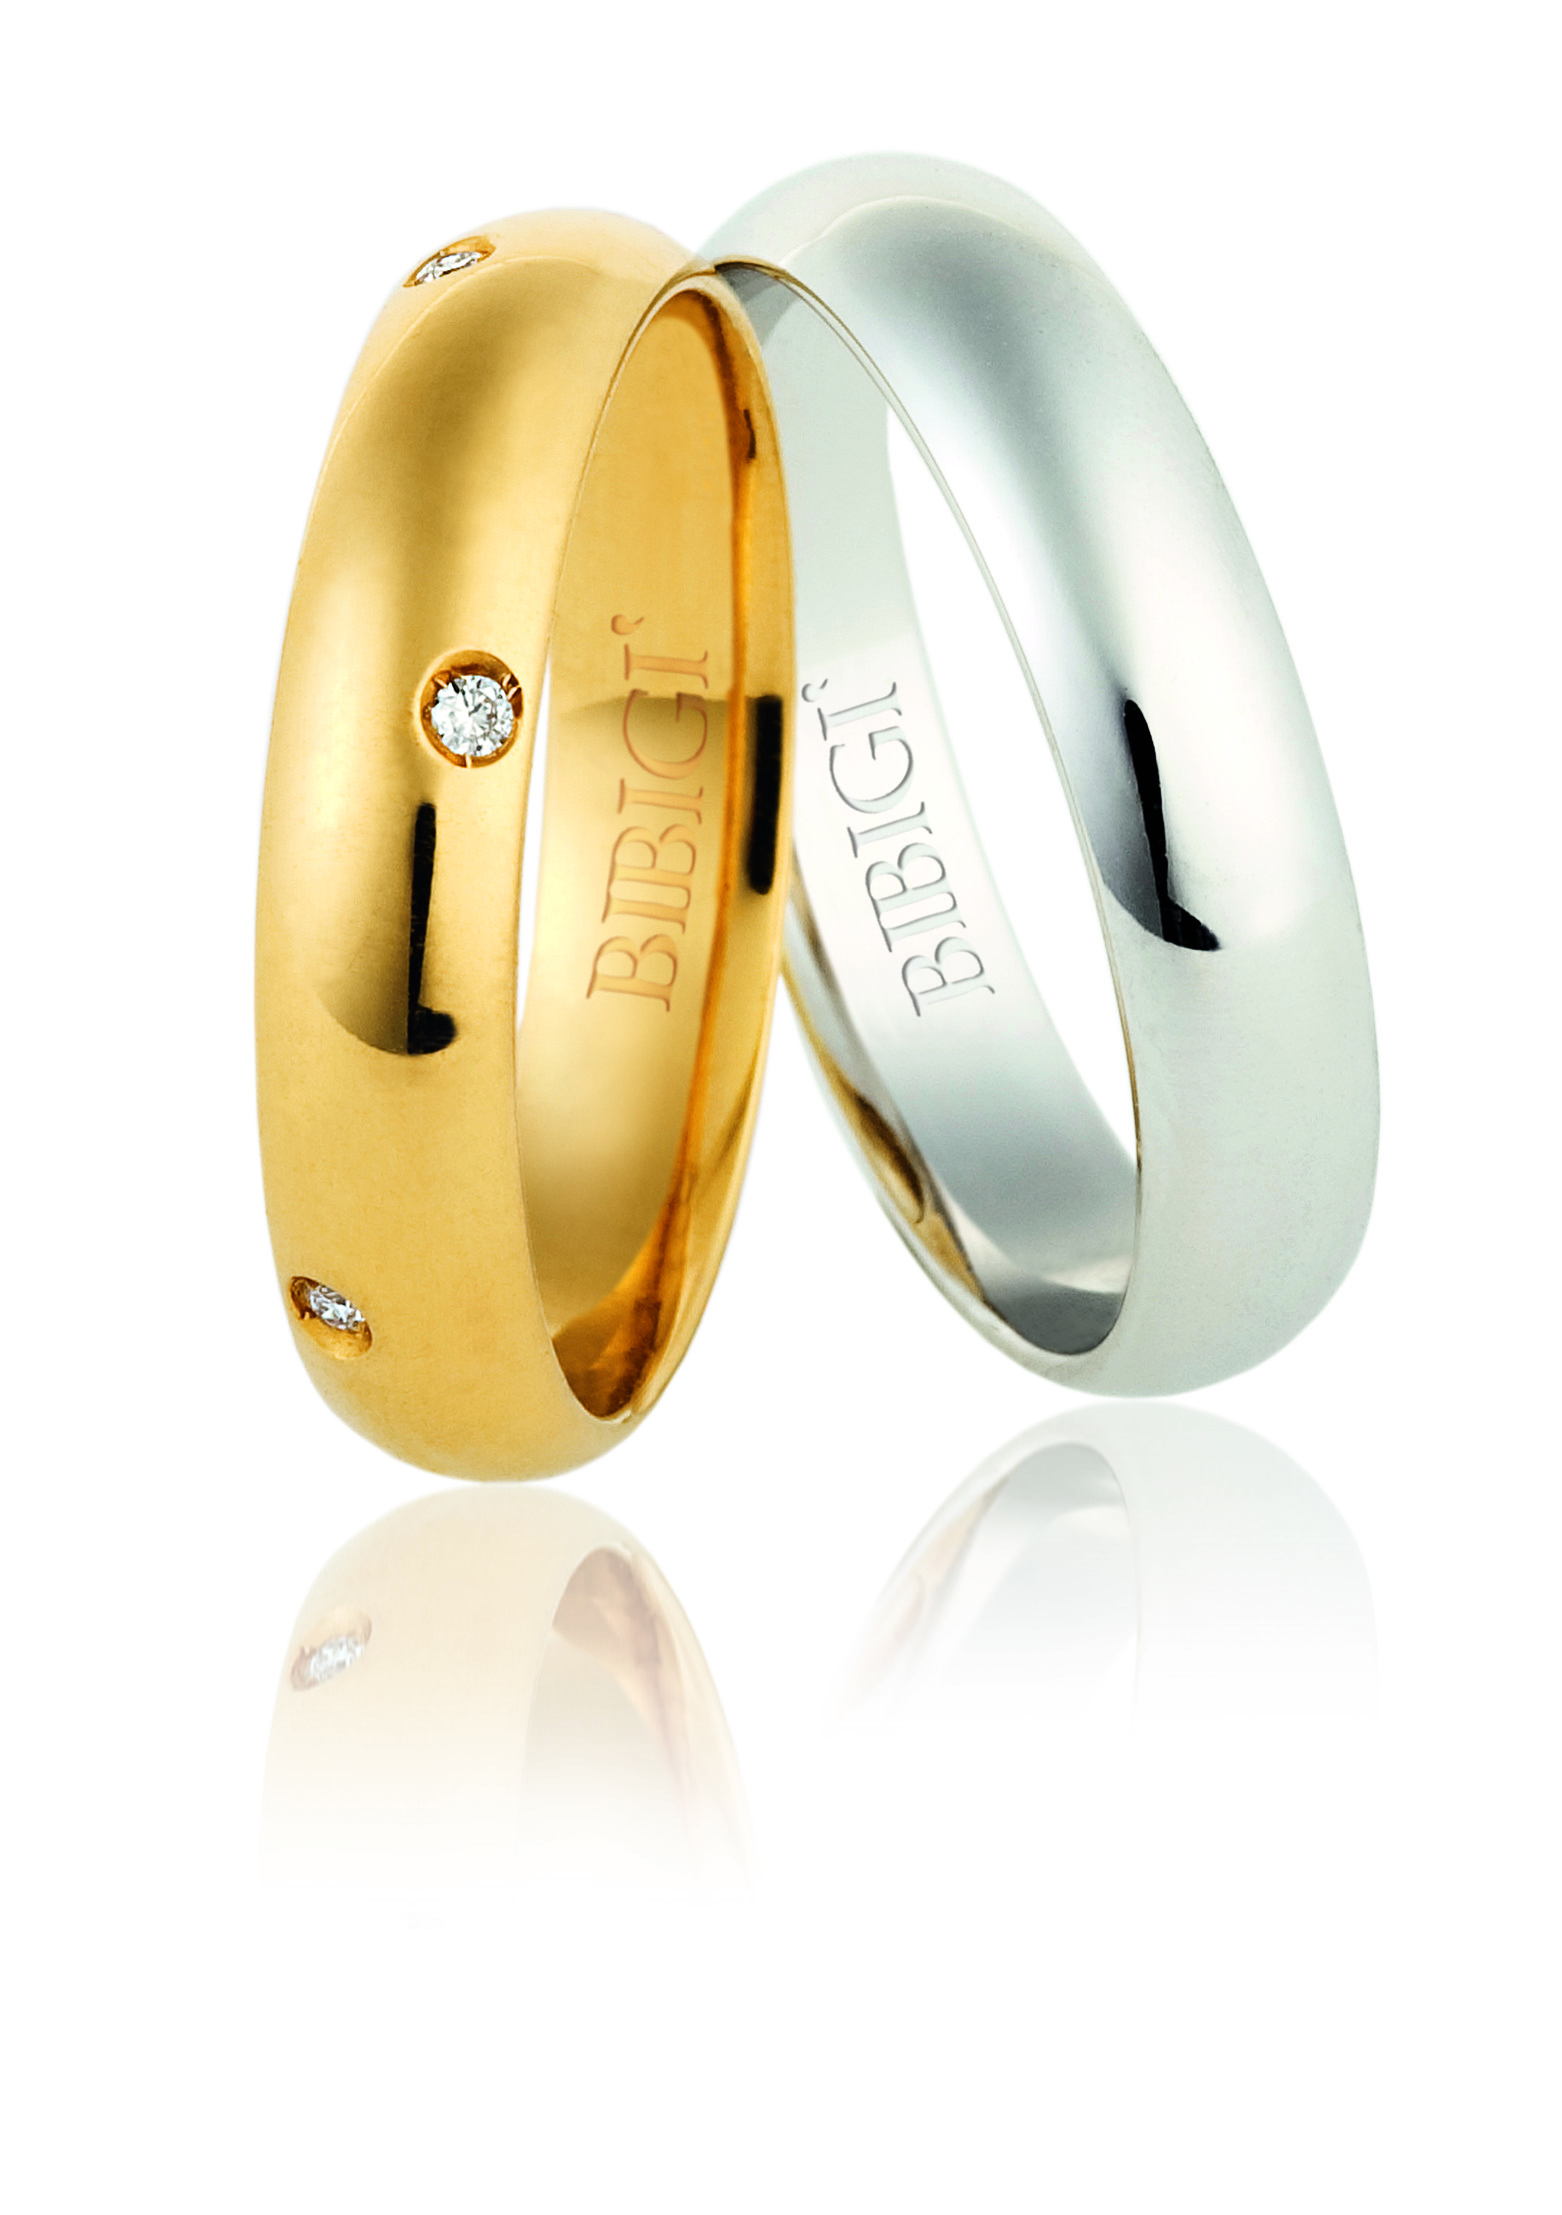 bibigi wedding rings 9-2